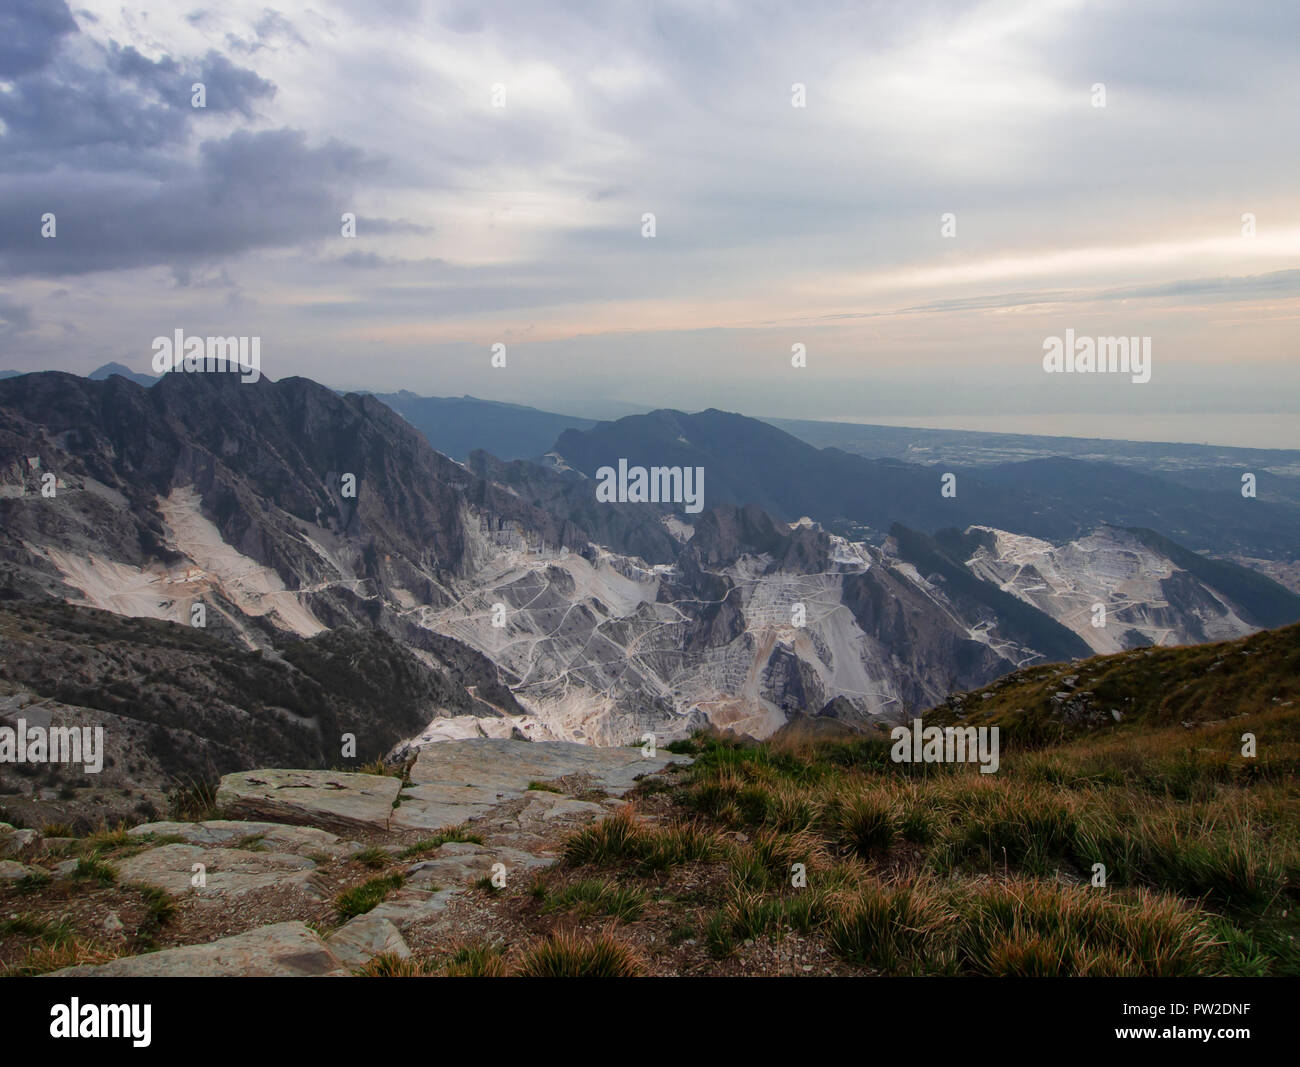 Dramatic wide angle view over the white marble quarries seen from Campo Cecina, Massa Carrara, Italy. Autumn, fall. Beautiful landscape but also environmental issues. - Stock Image